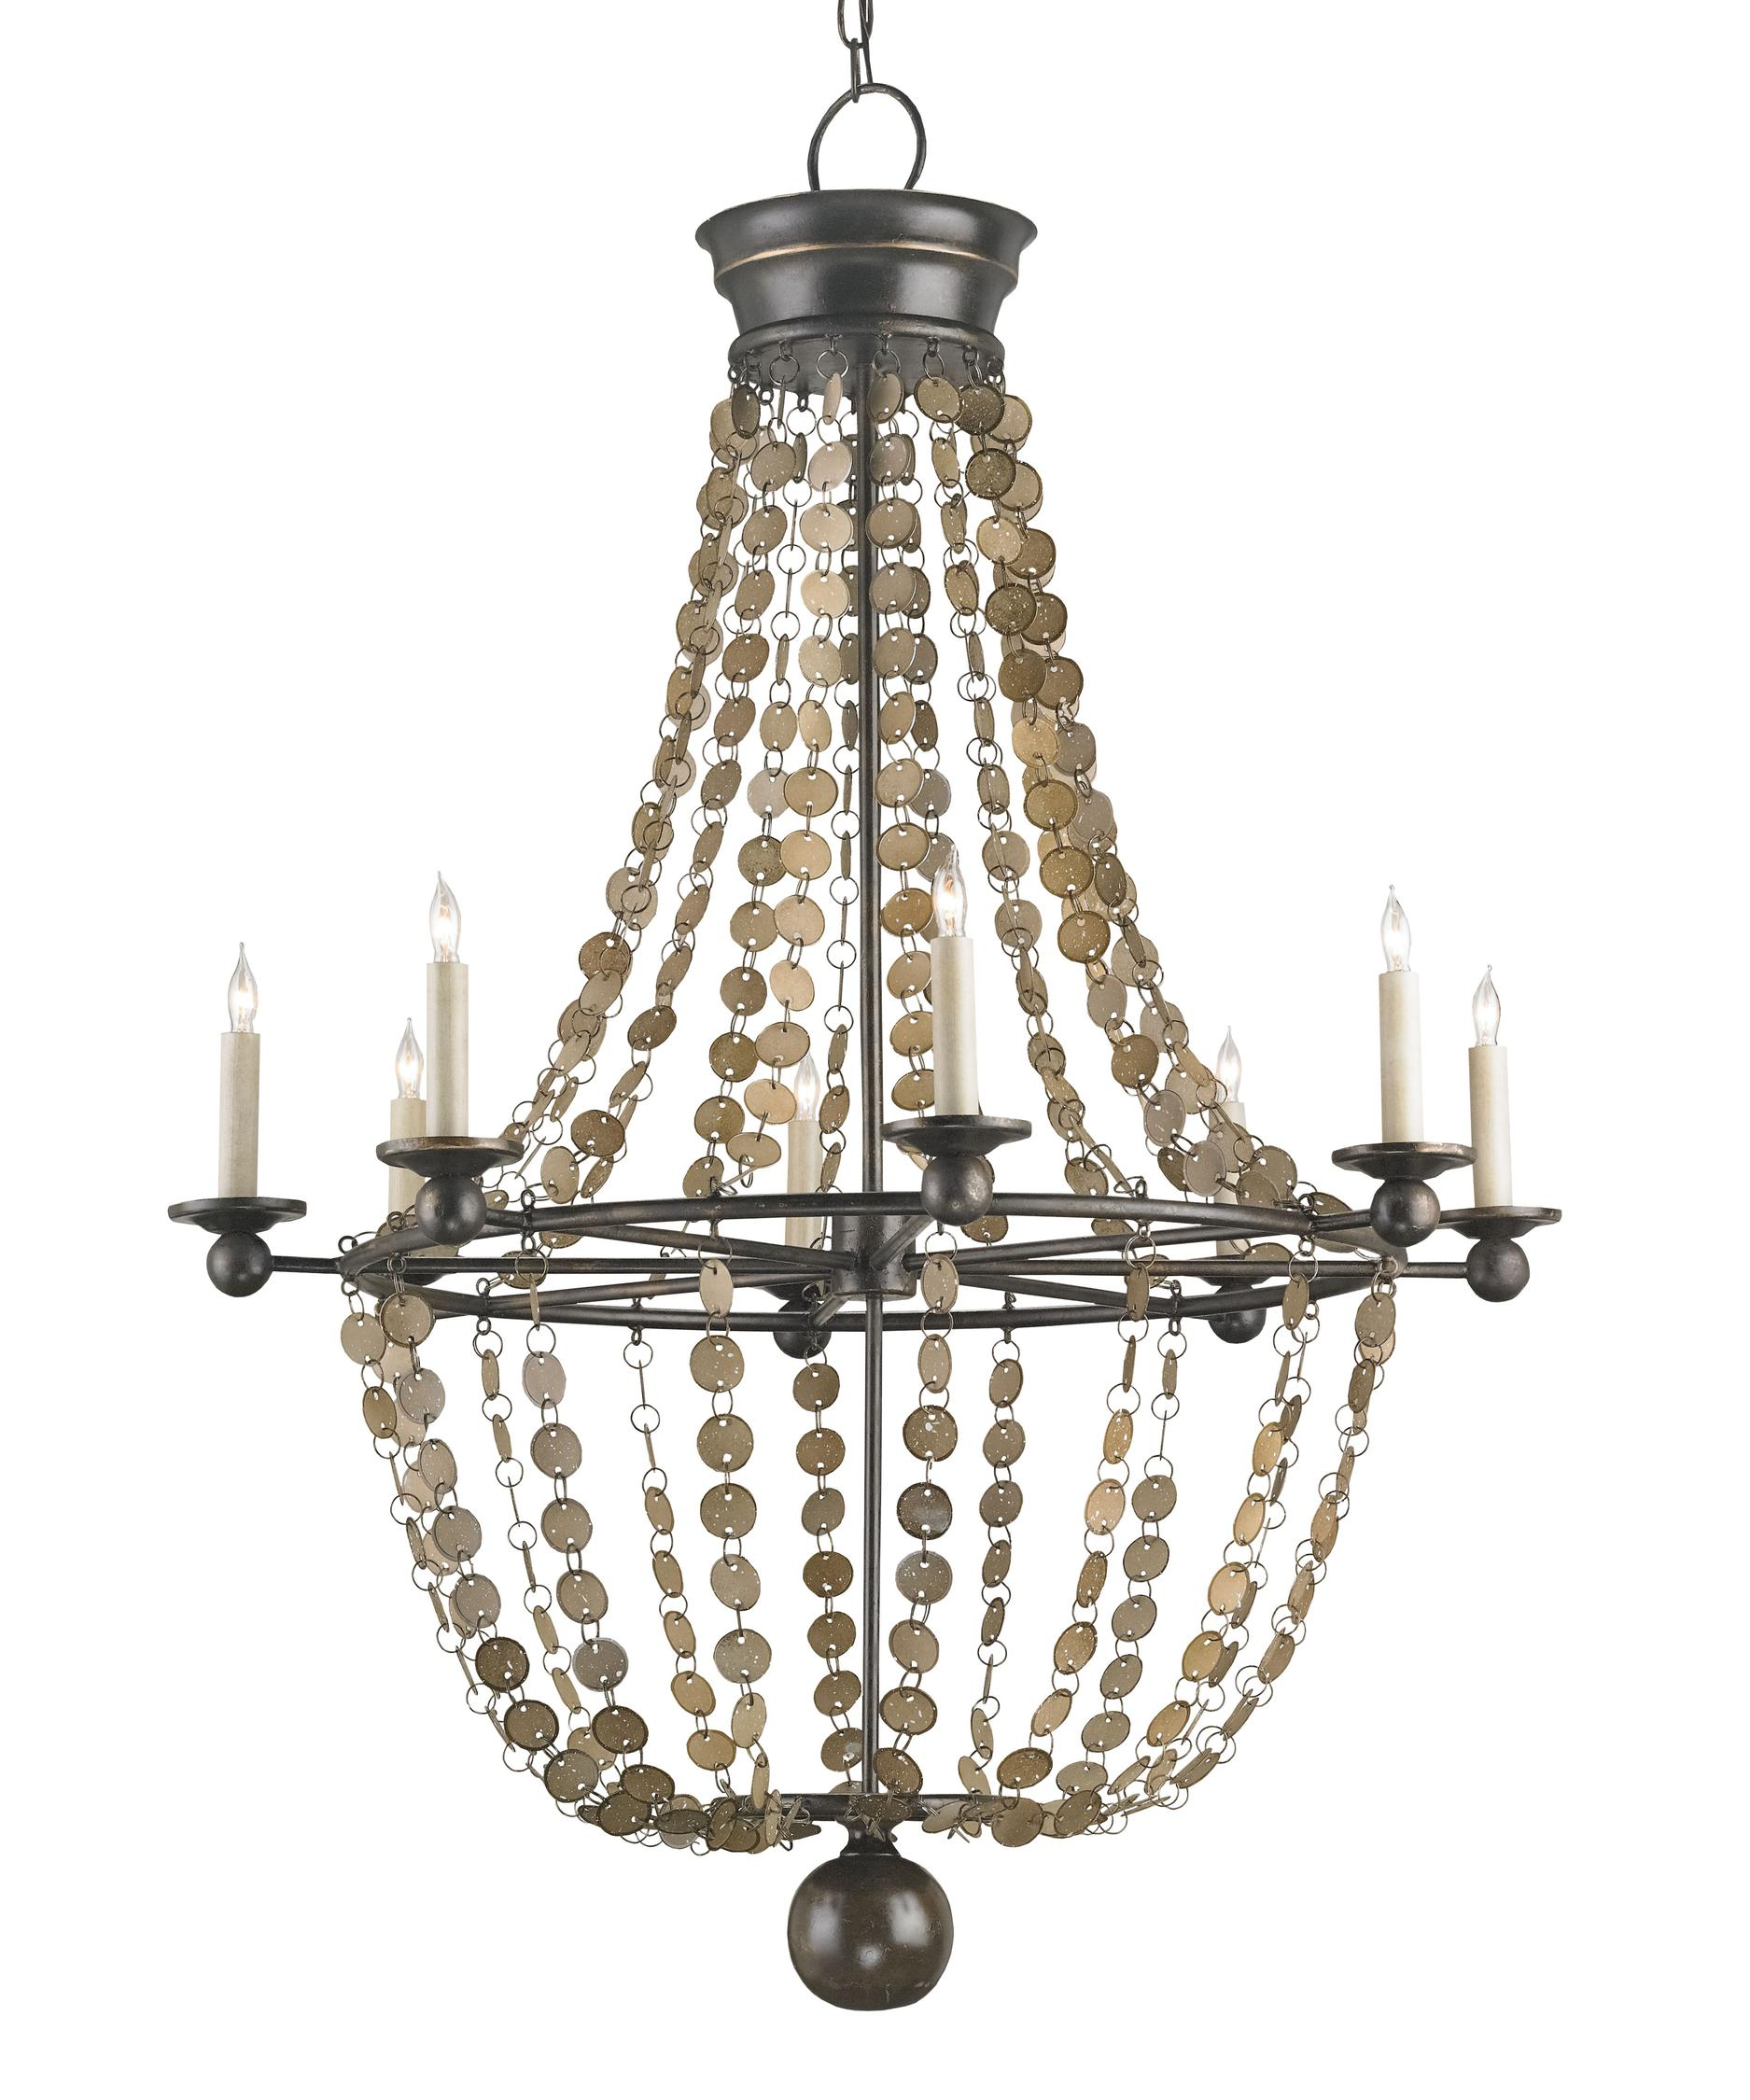 Currey and Company Creswell 32 Inch Wide 8 Light Chandelier | Capitol  Lighting 1-800lighting.com